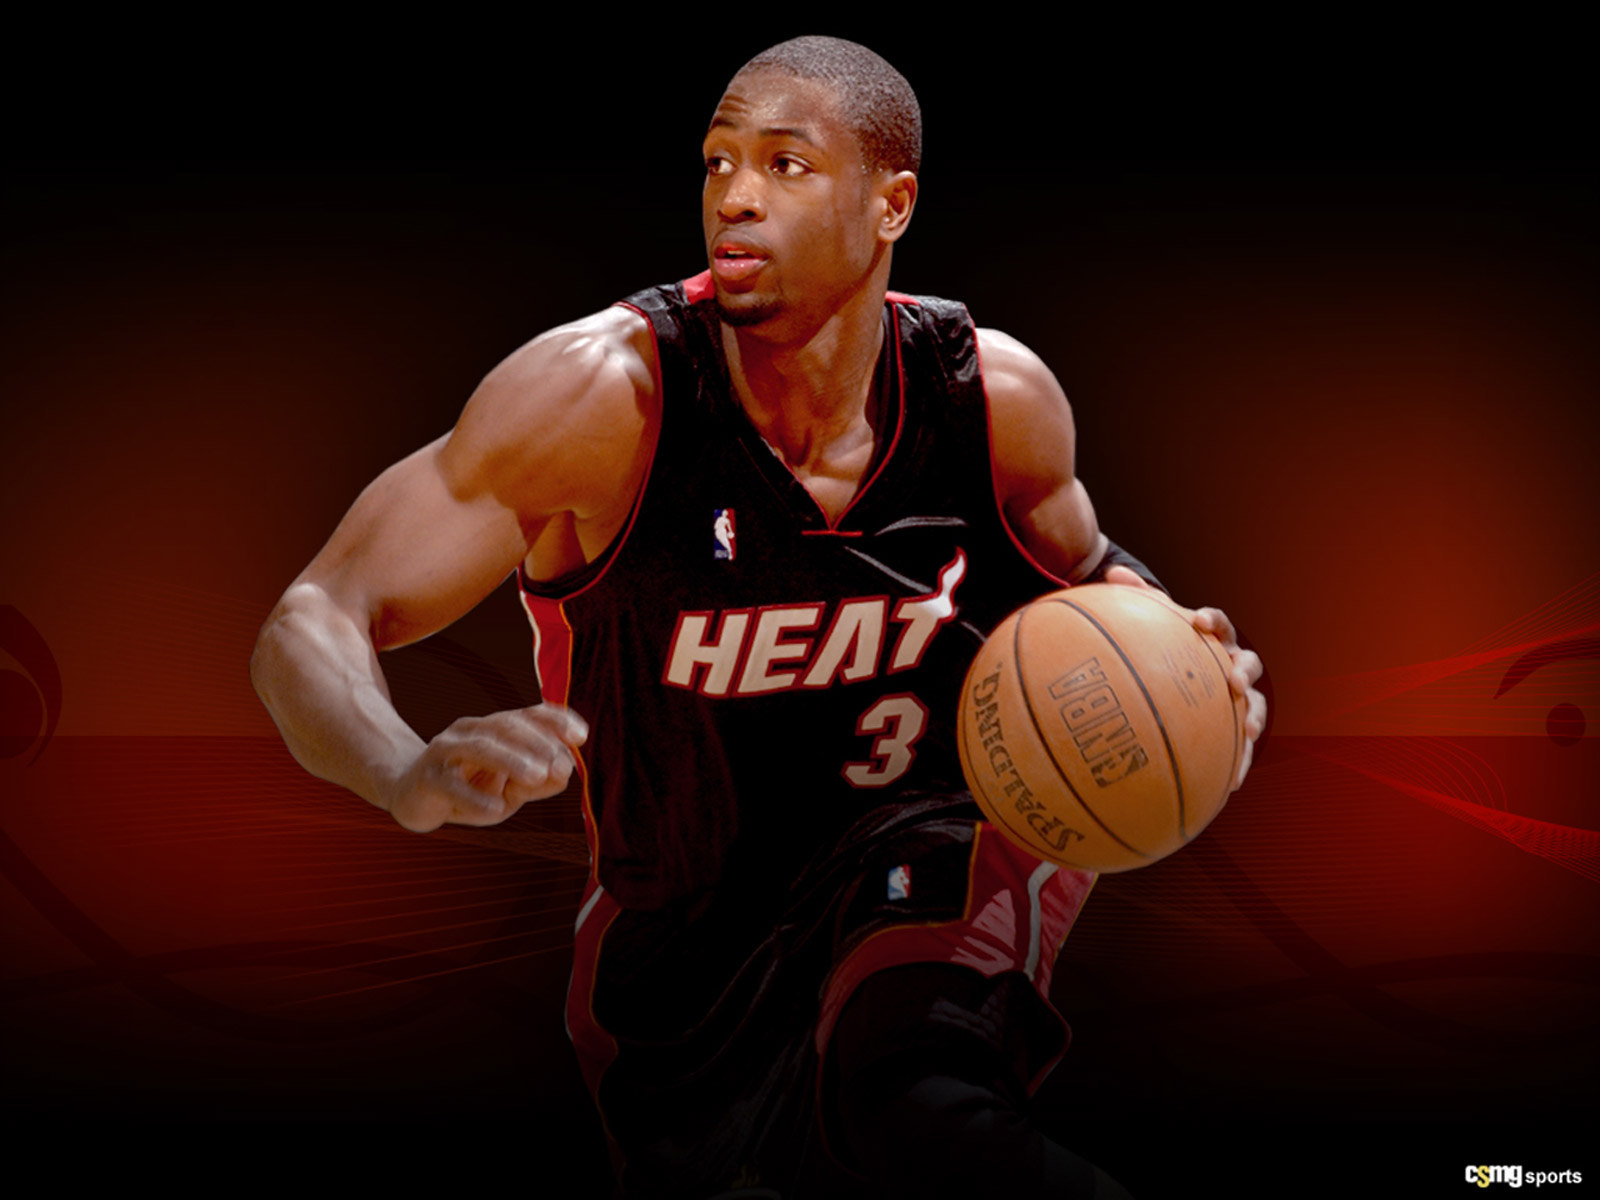 Wallpapers DWYANE WADE NBA TSEBA 1600x1200